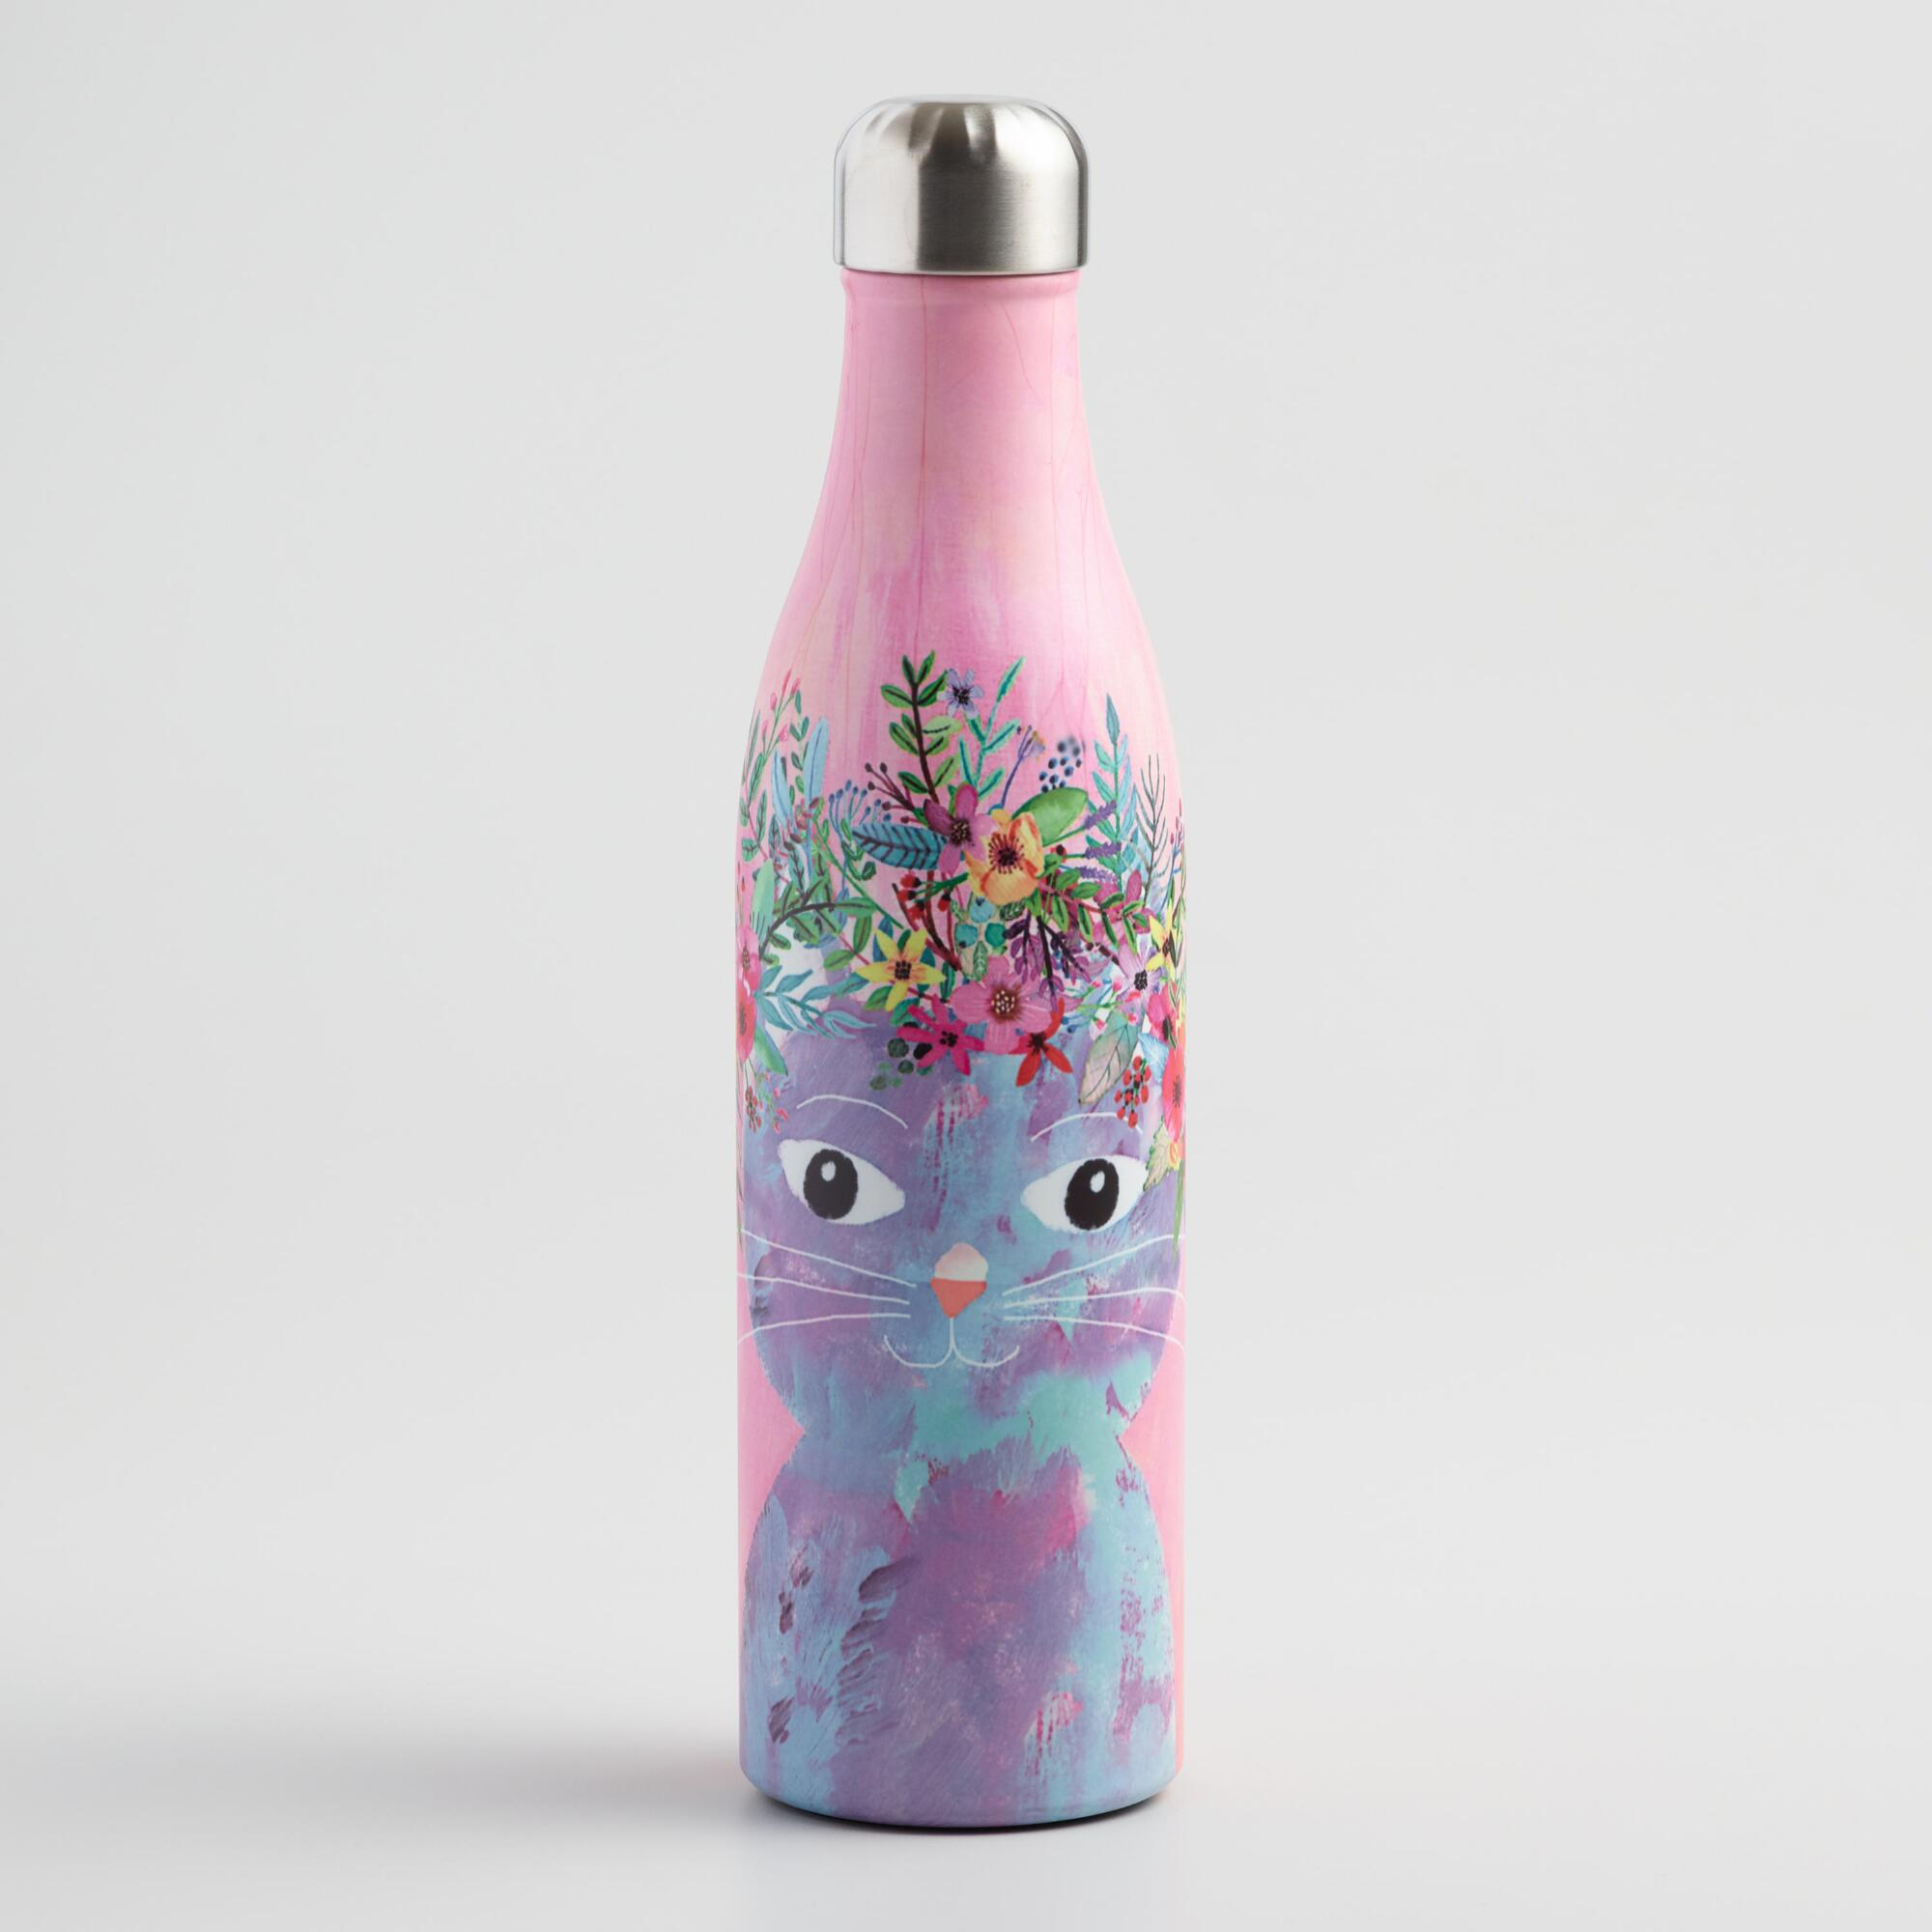 Large Fancy Cat Insulated Stainless Steel Water Bottle by World Market